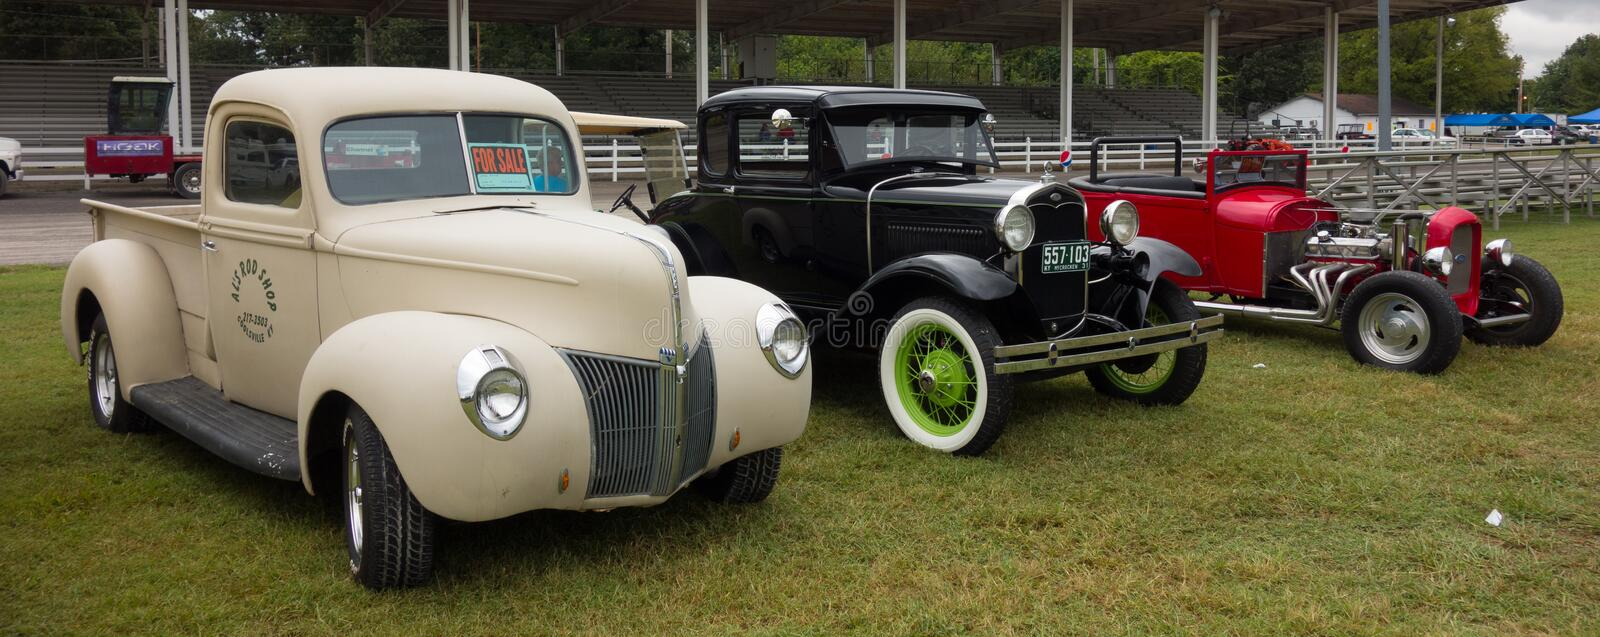 Antique cars in pristine condition at an annual summer event in paducah. Beautifully preserved vehicles on display at a county fair in kentucky stock photography